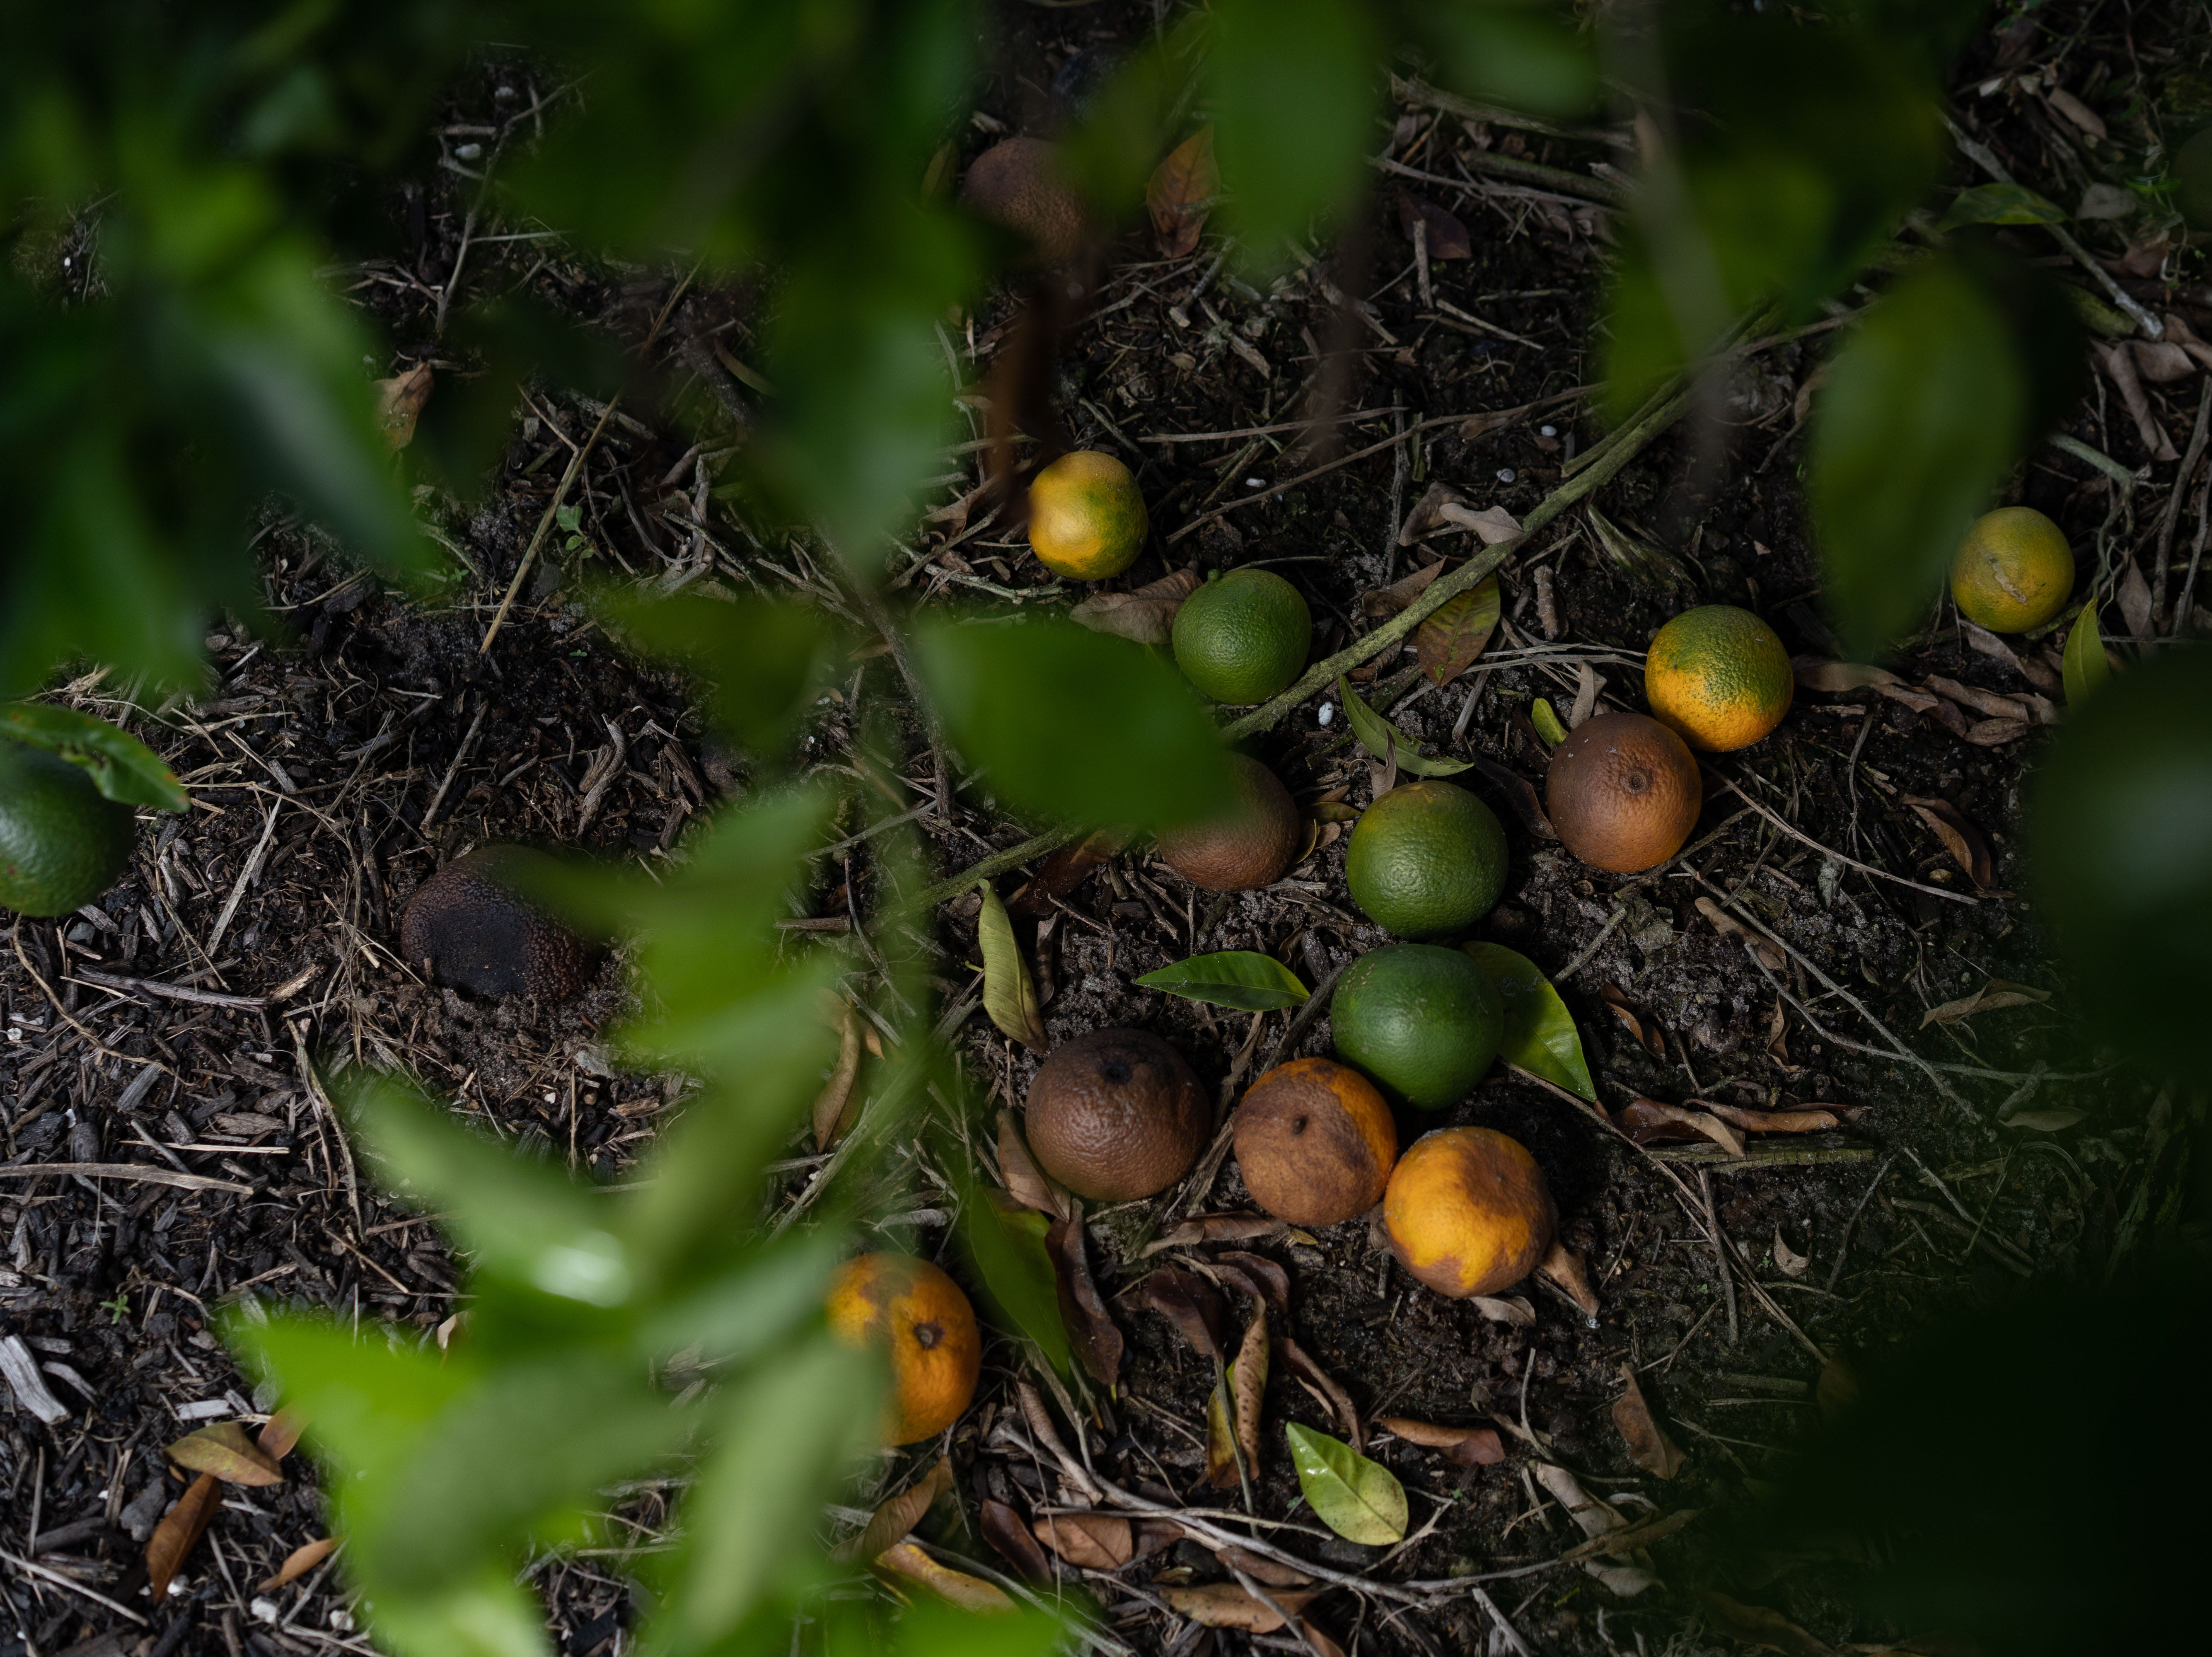 """Green and ripe tangerines lay in the dirt of Martin Mason's farm in Labelle. The farm was struck by hurricane Irma's fury last year. With dedicated work, Mason has been able mostly been able to get his farm running up and about again, but, remains of damage still prevails. """"My fruits are money,"""" Mason said. """"And I am desperate for money."""""""